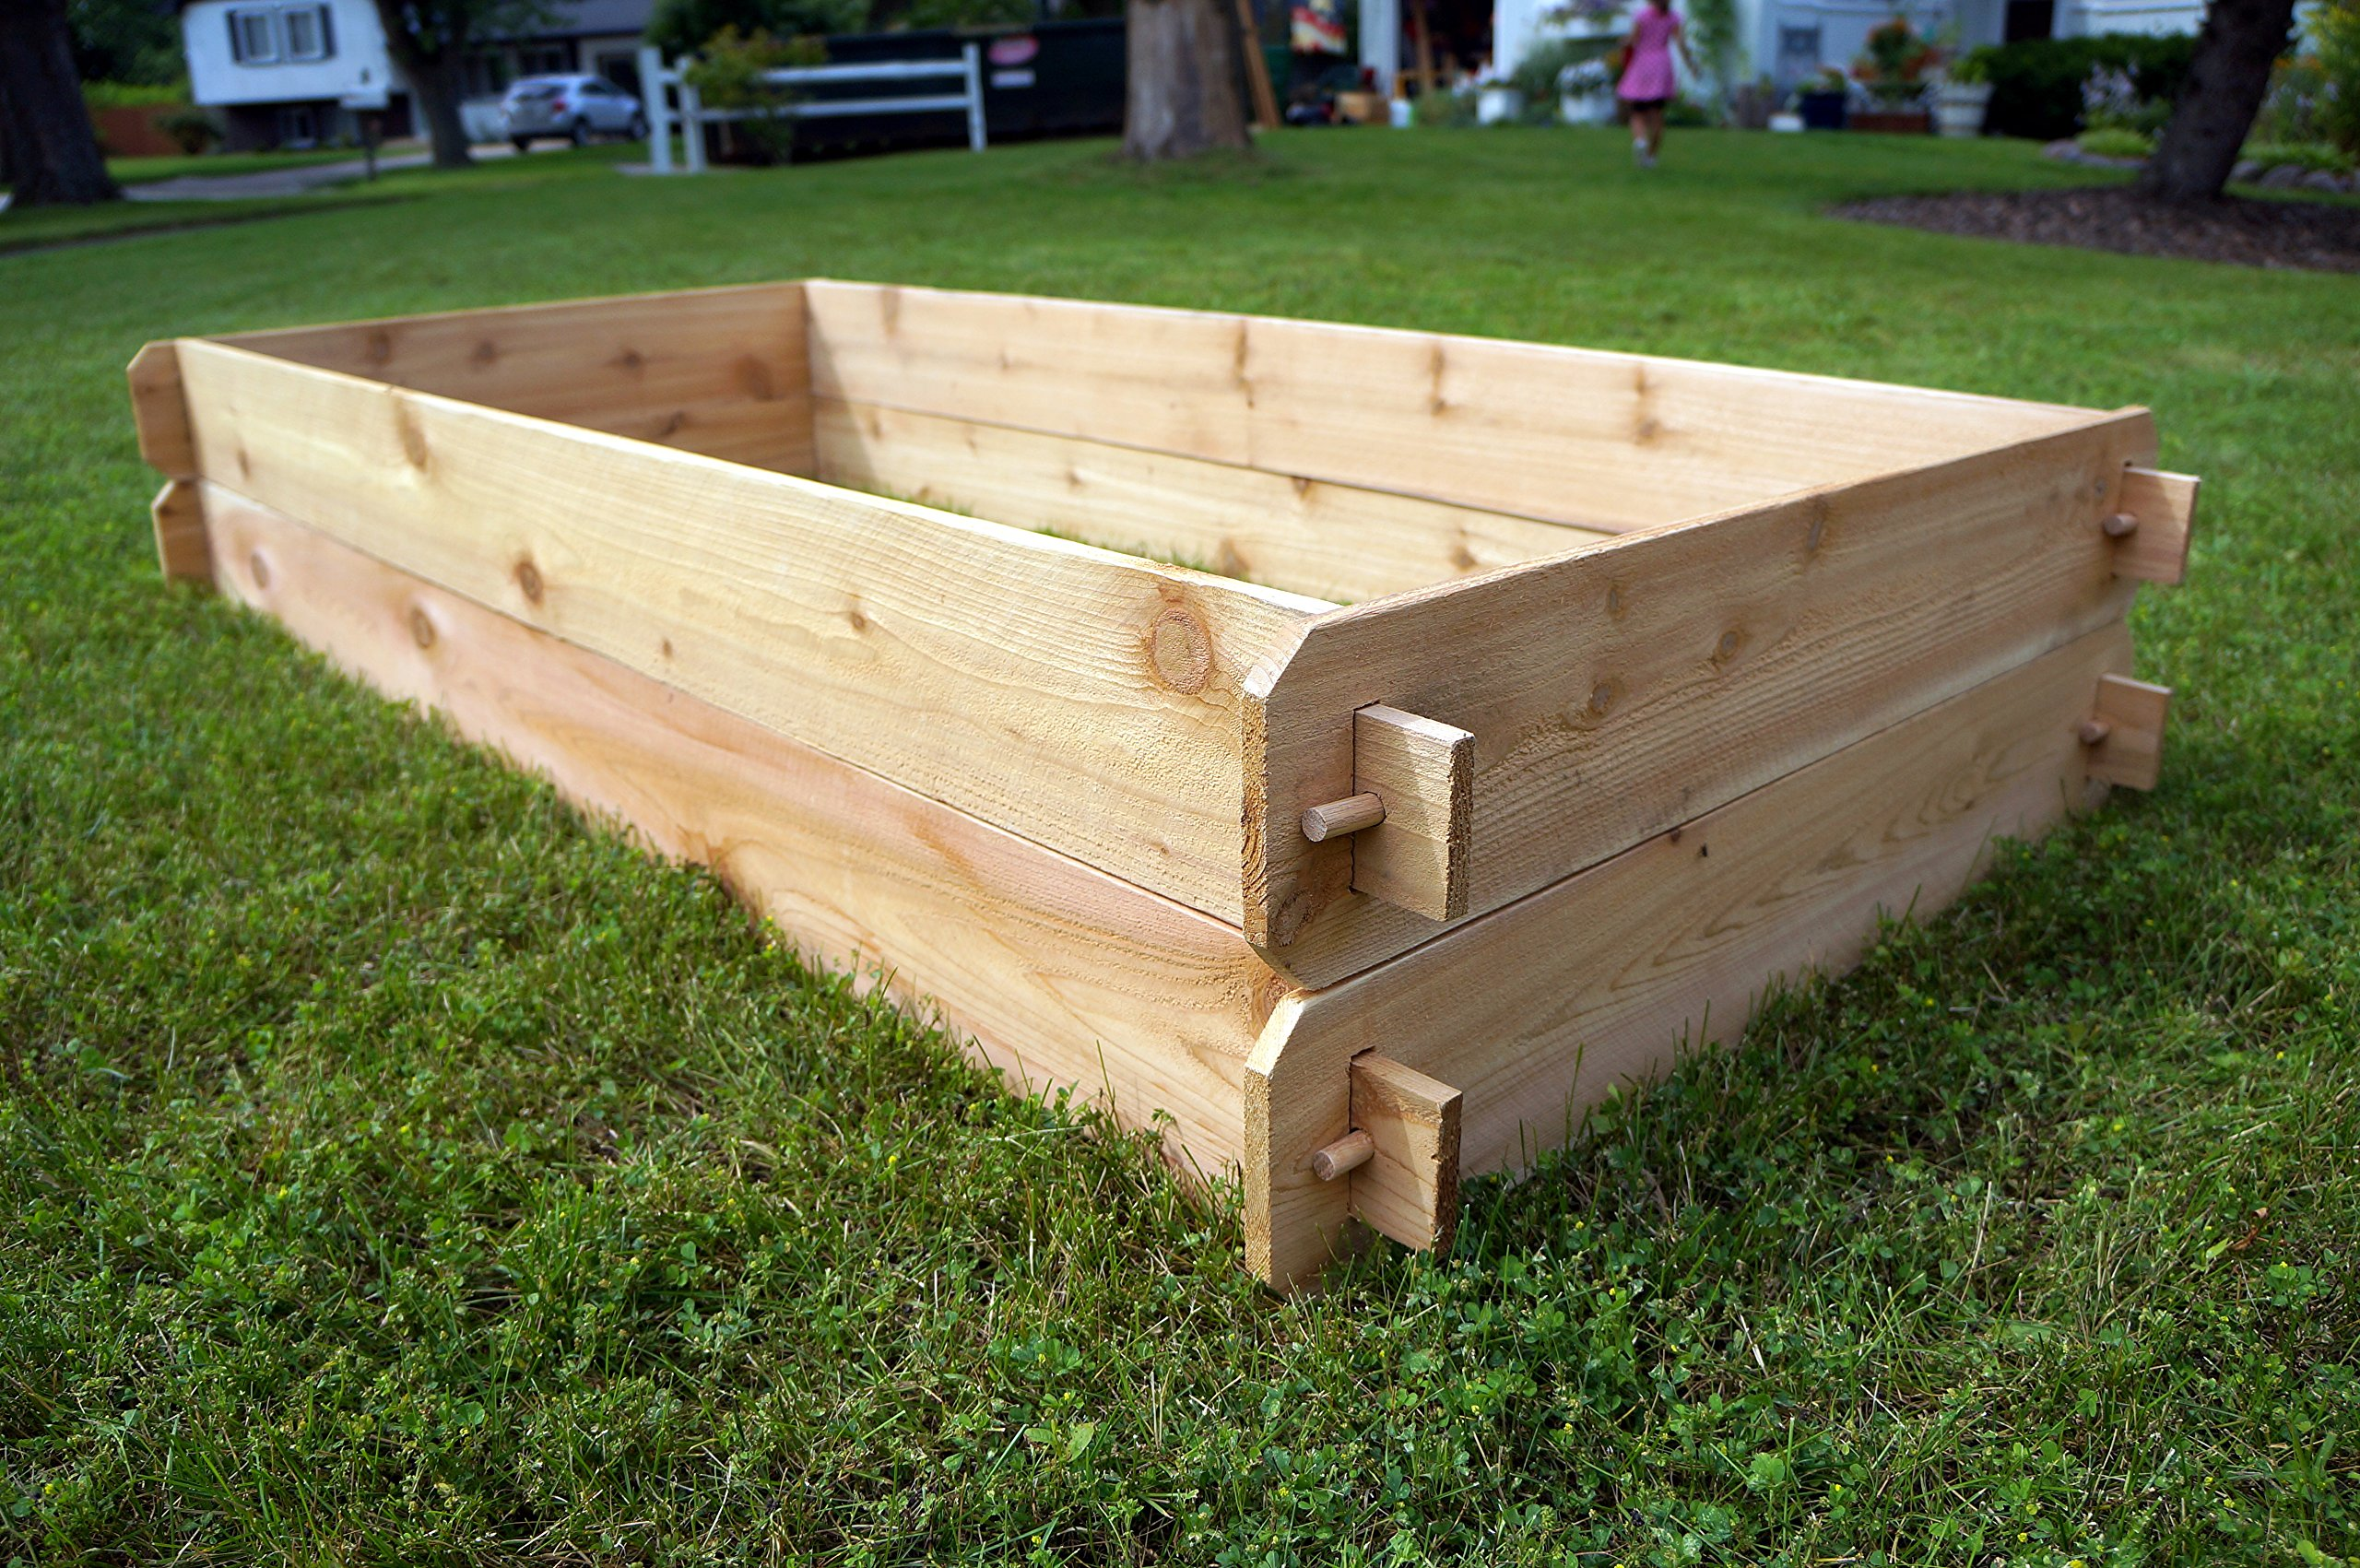 Timberlane Gardens Raised Bed Kit Double Deep, Western Red Cedar Mortise Tenon Joinery, 3' W x 6' L 4 Raised garden bed kit proudly made in homer glen, Illinois USA Constructed of select western red cedar Handcrafted mortise & tenon joinery